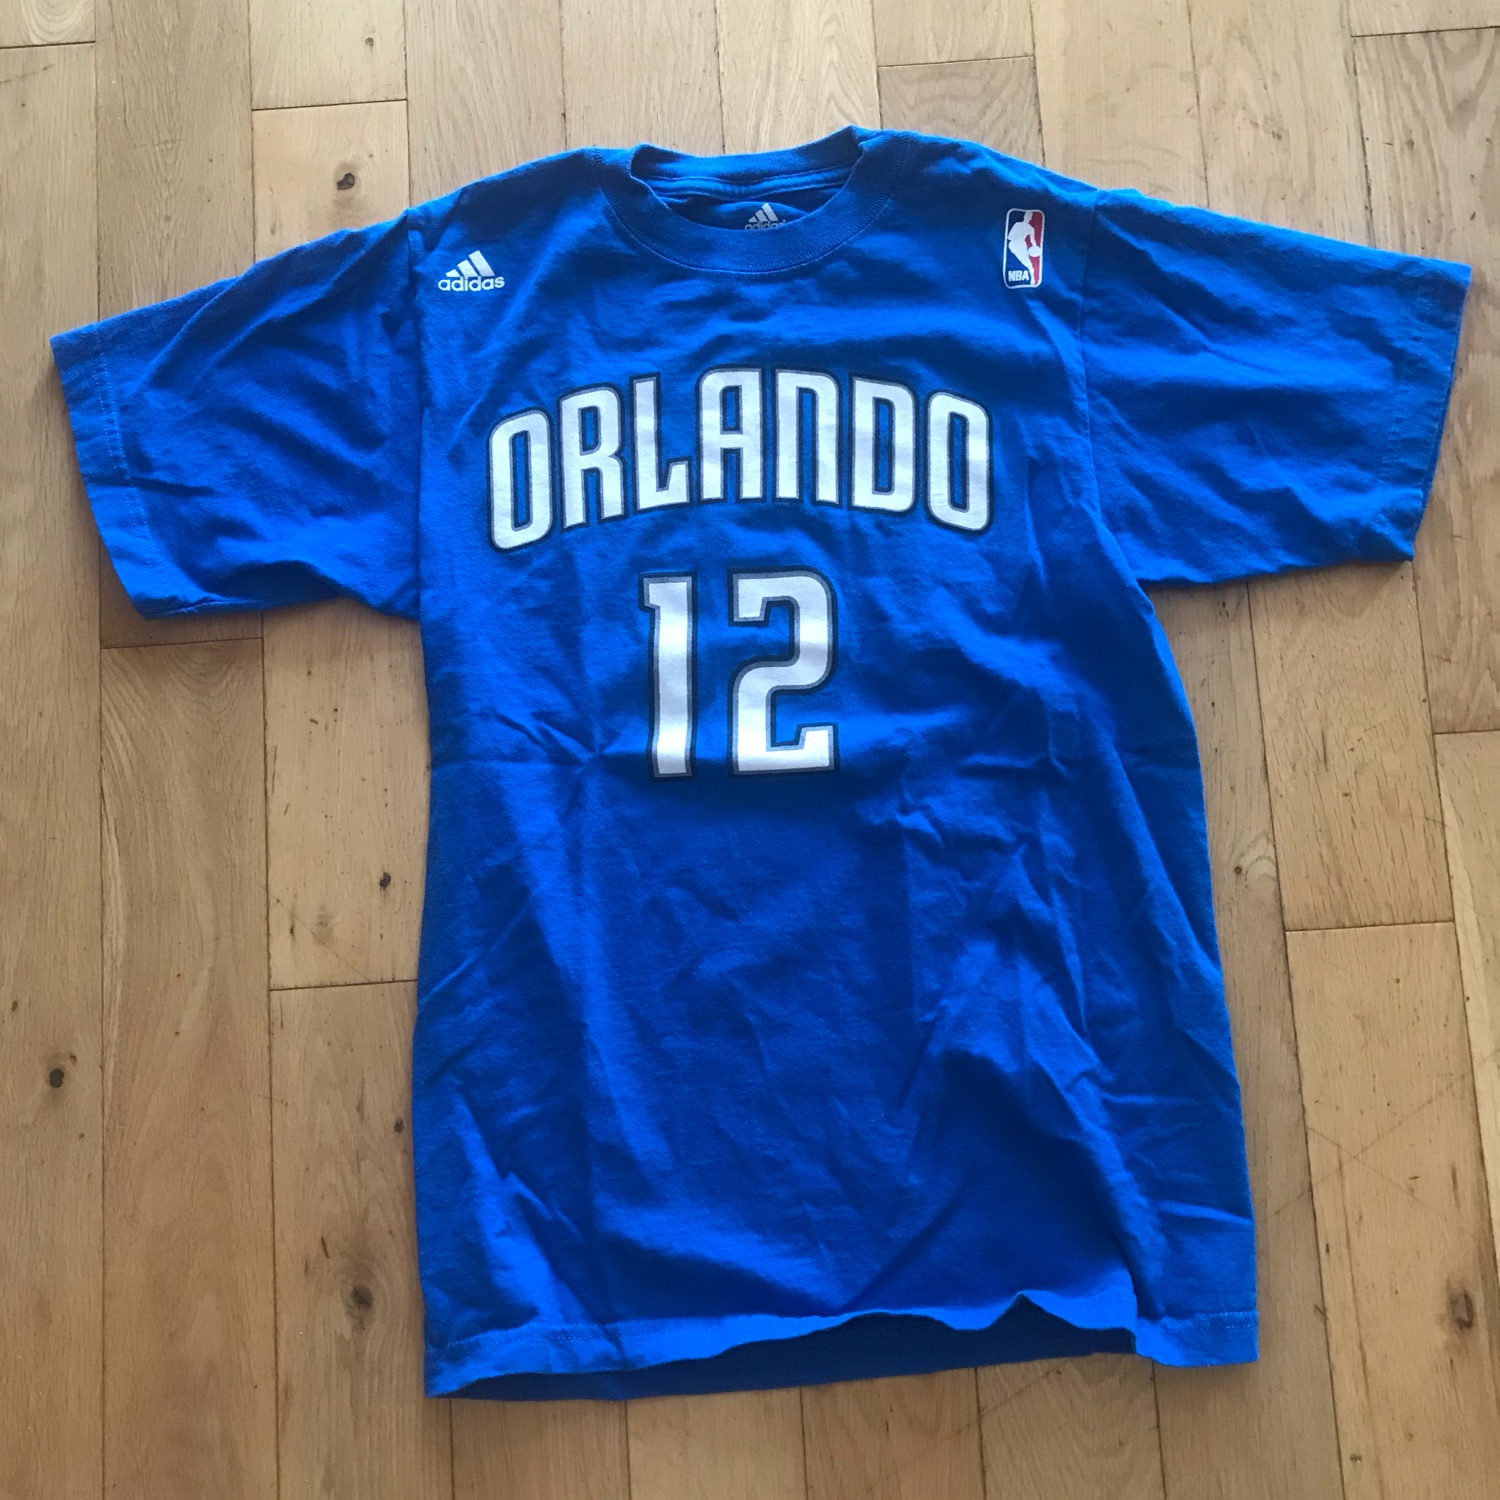 low priced 910fb bd8d0 Dwight Howard Orlando Magic Jersey Size S